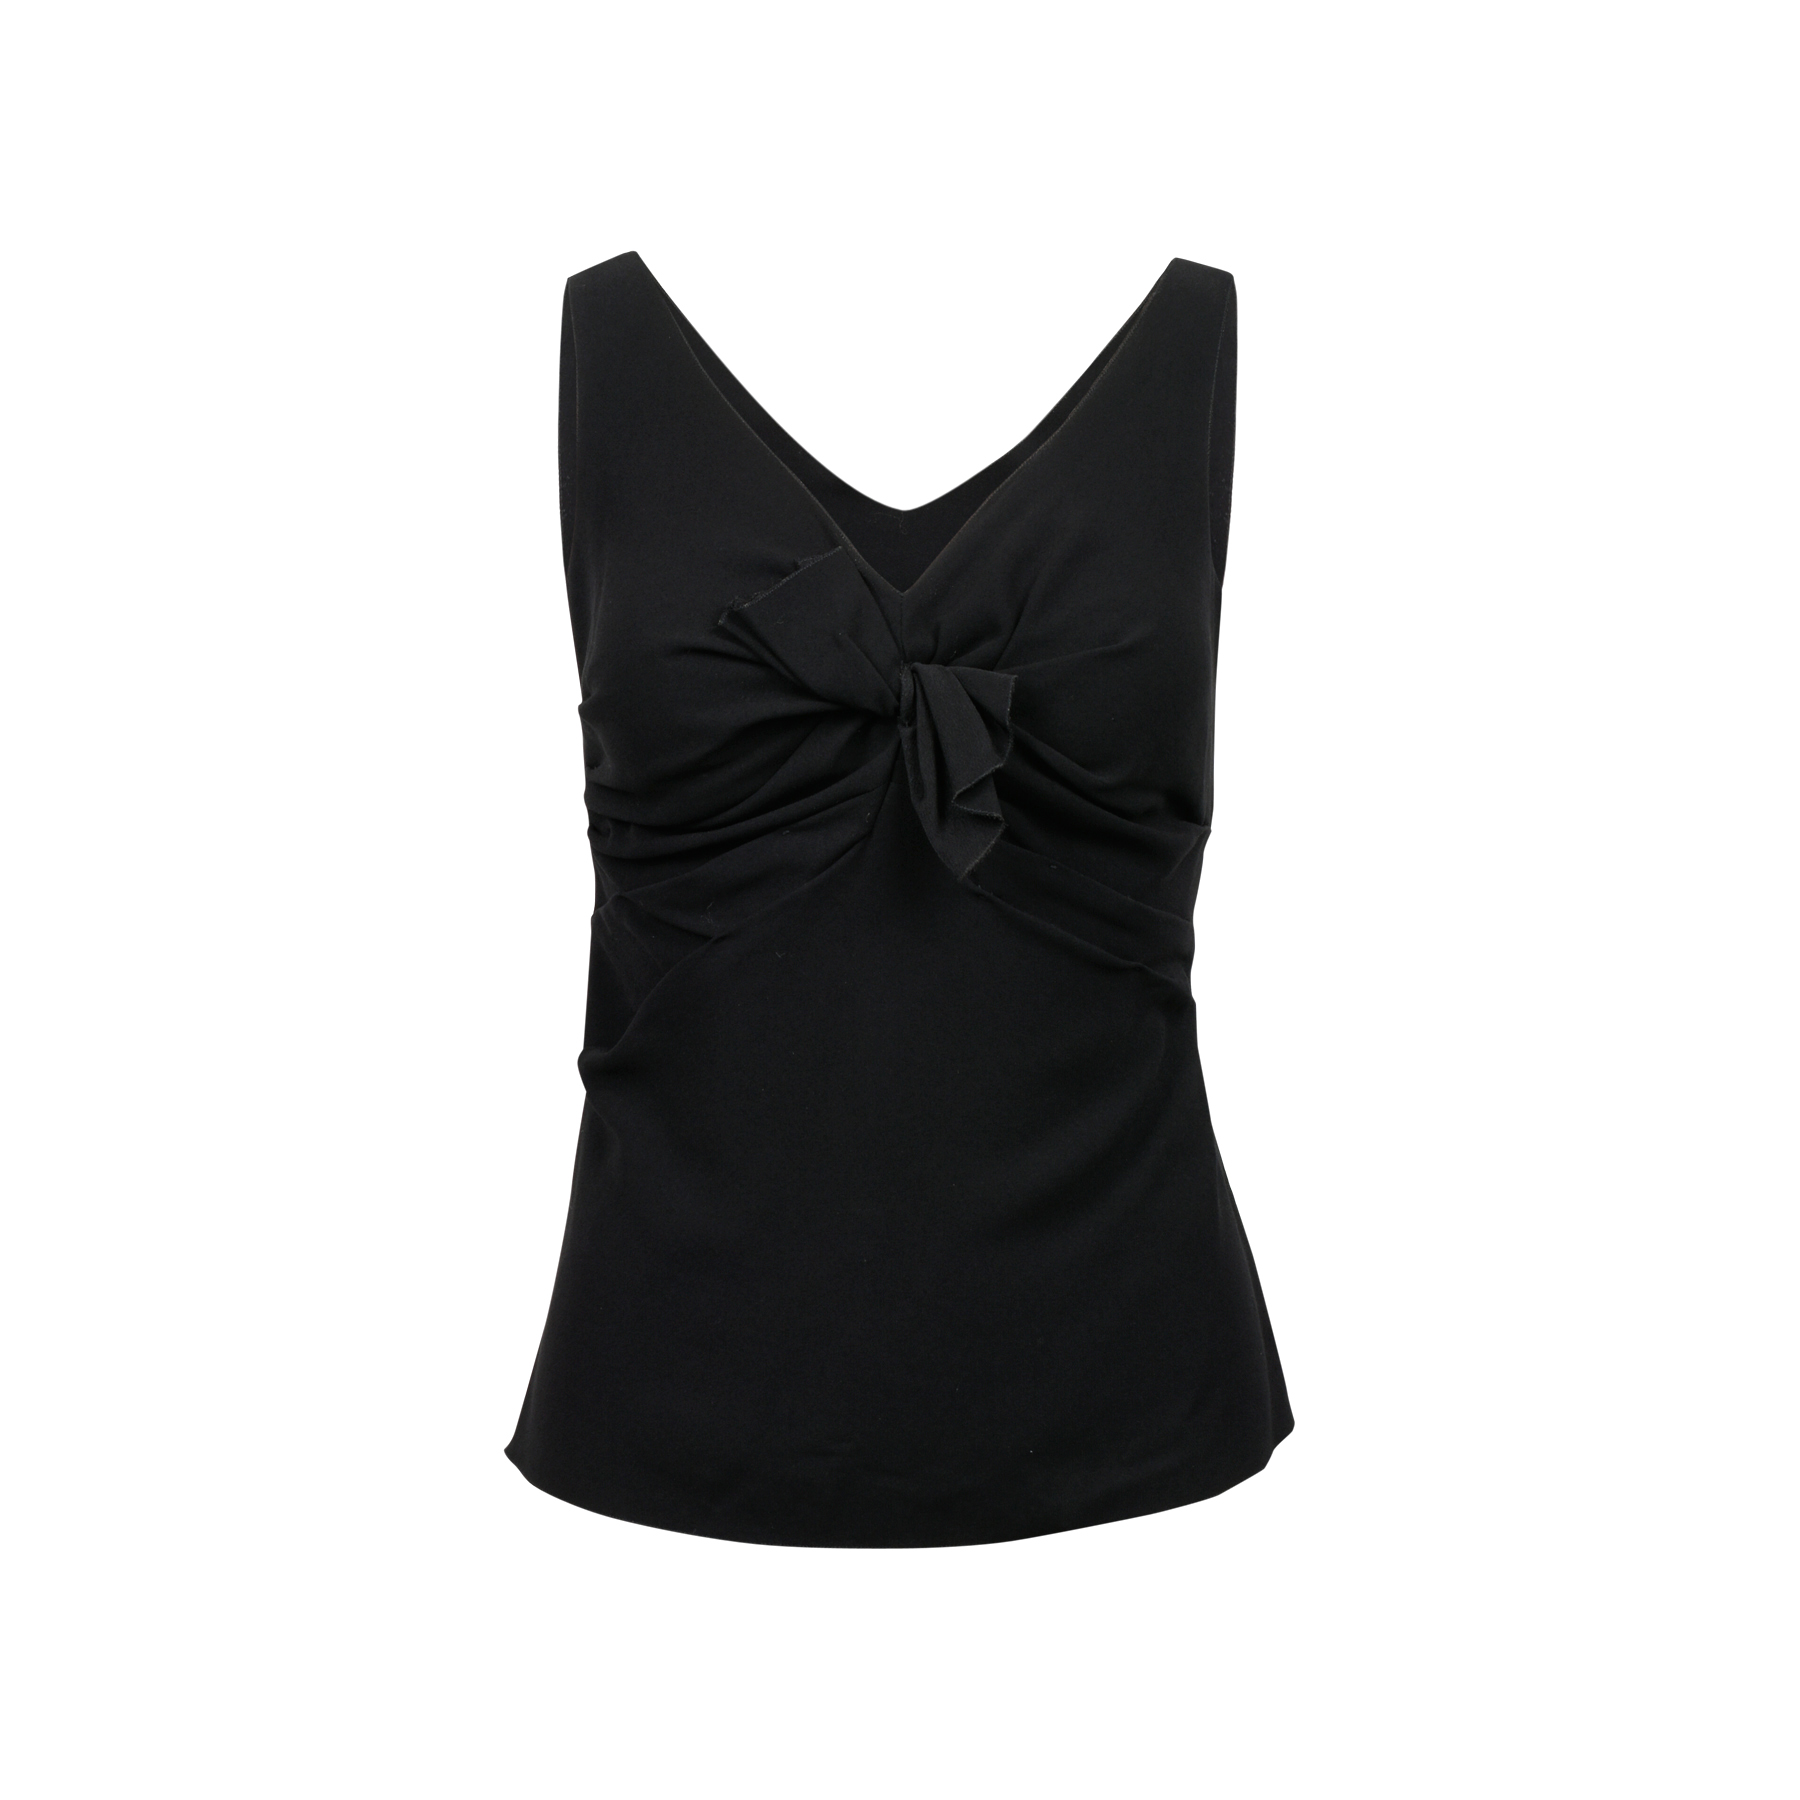 a3968377659ac8 Authentic Second Hand Prada Bow Detail Top (PSS-071-00166)